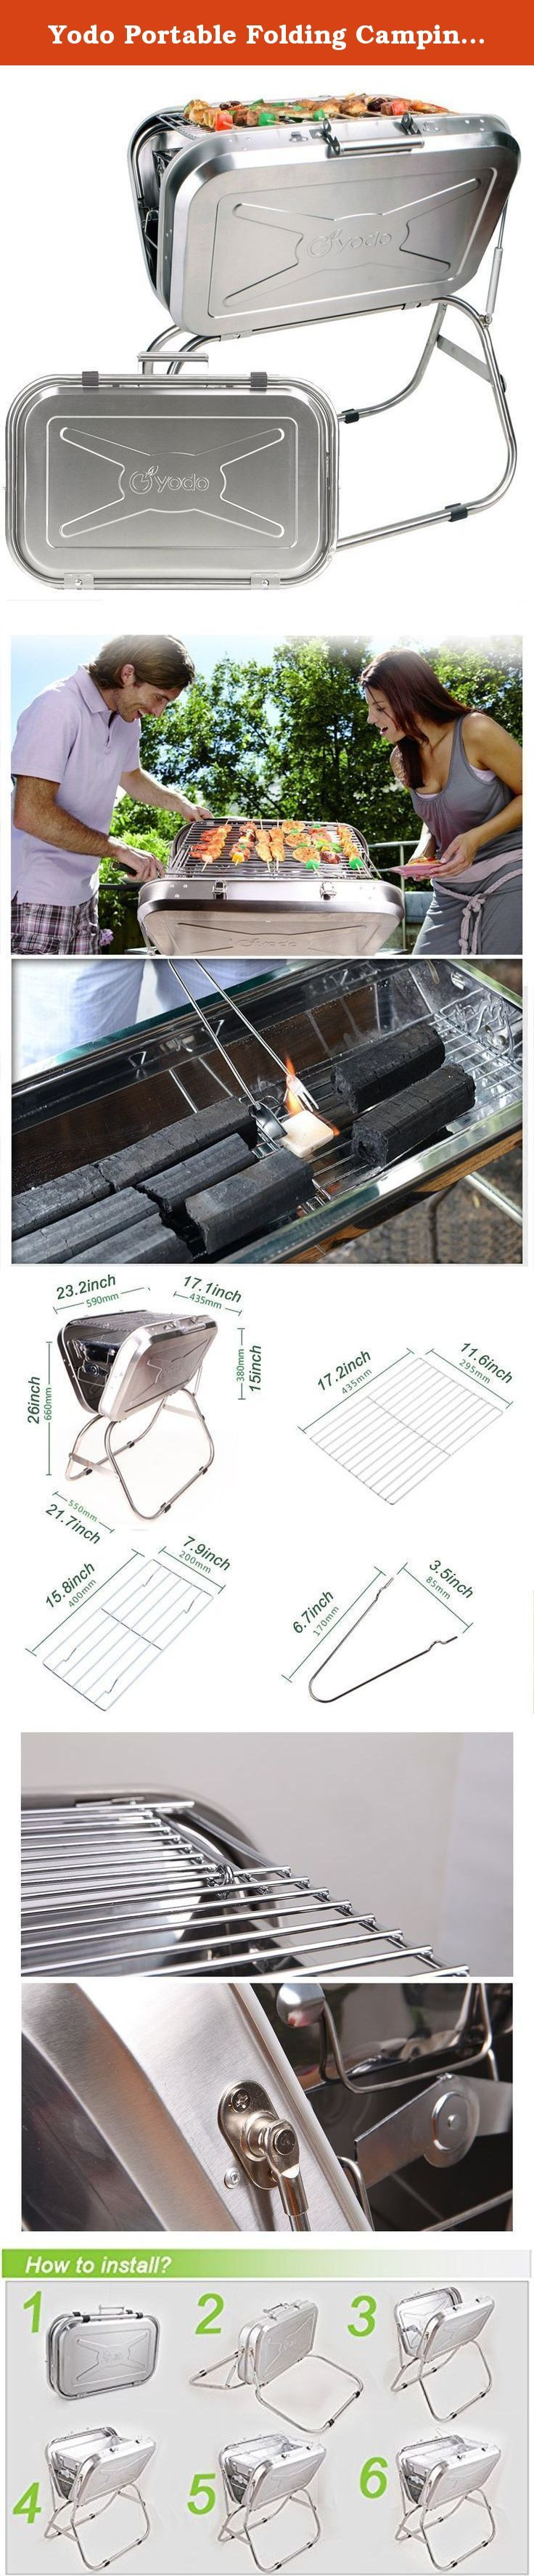 Yodo Portable Folding Camping Grill Charcoal Barbecue Grill for 2-4 Person Tailgate Roadtrip Backpacking Party, Made of Premium Stainless Steel. Are you looking for a high quality portable and compact BBQ Grill? This Yodo Stainless Steel BBQ grill would be a great choice for you. It could be packed into a compact suitcase measures about 23.2 x 15 inches What kinds of benefits it will bring to you? High quality Stainless Steel Grill is much more durable and easy clean than traditional iron...